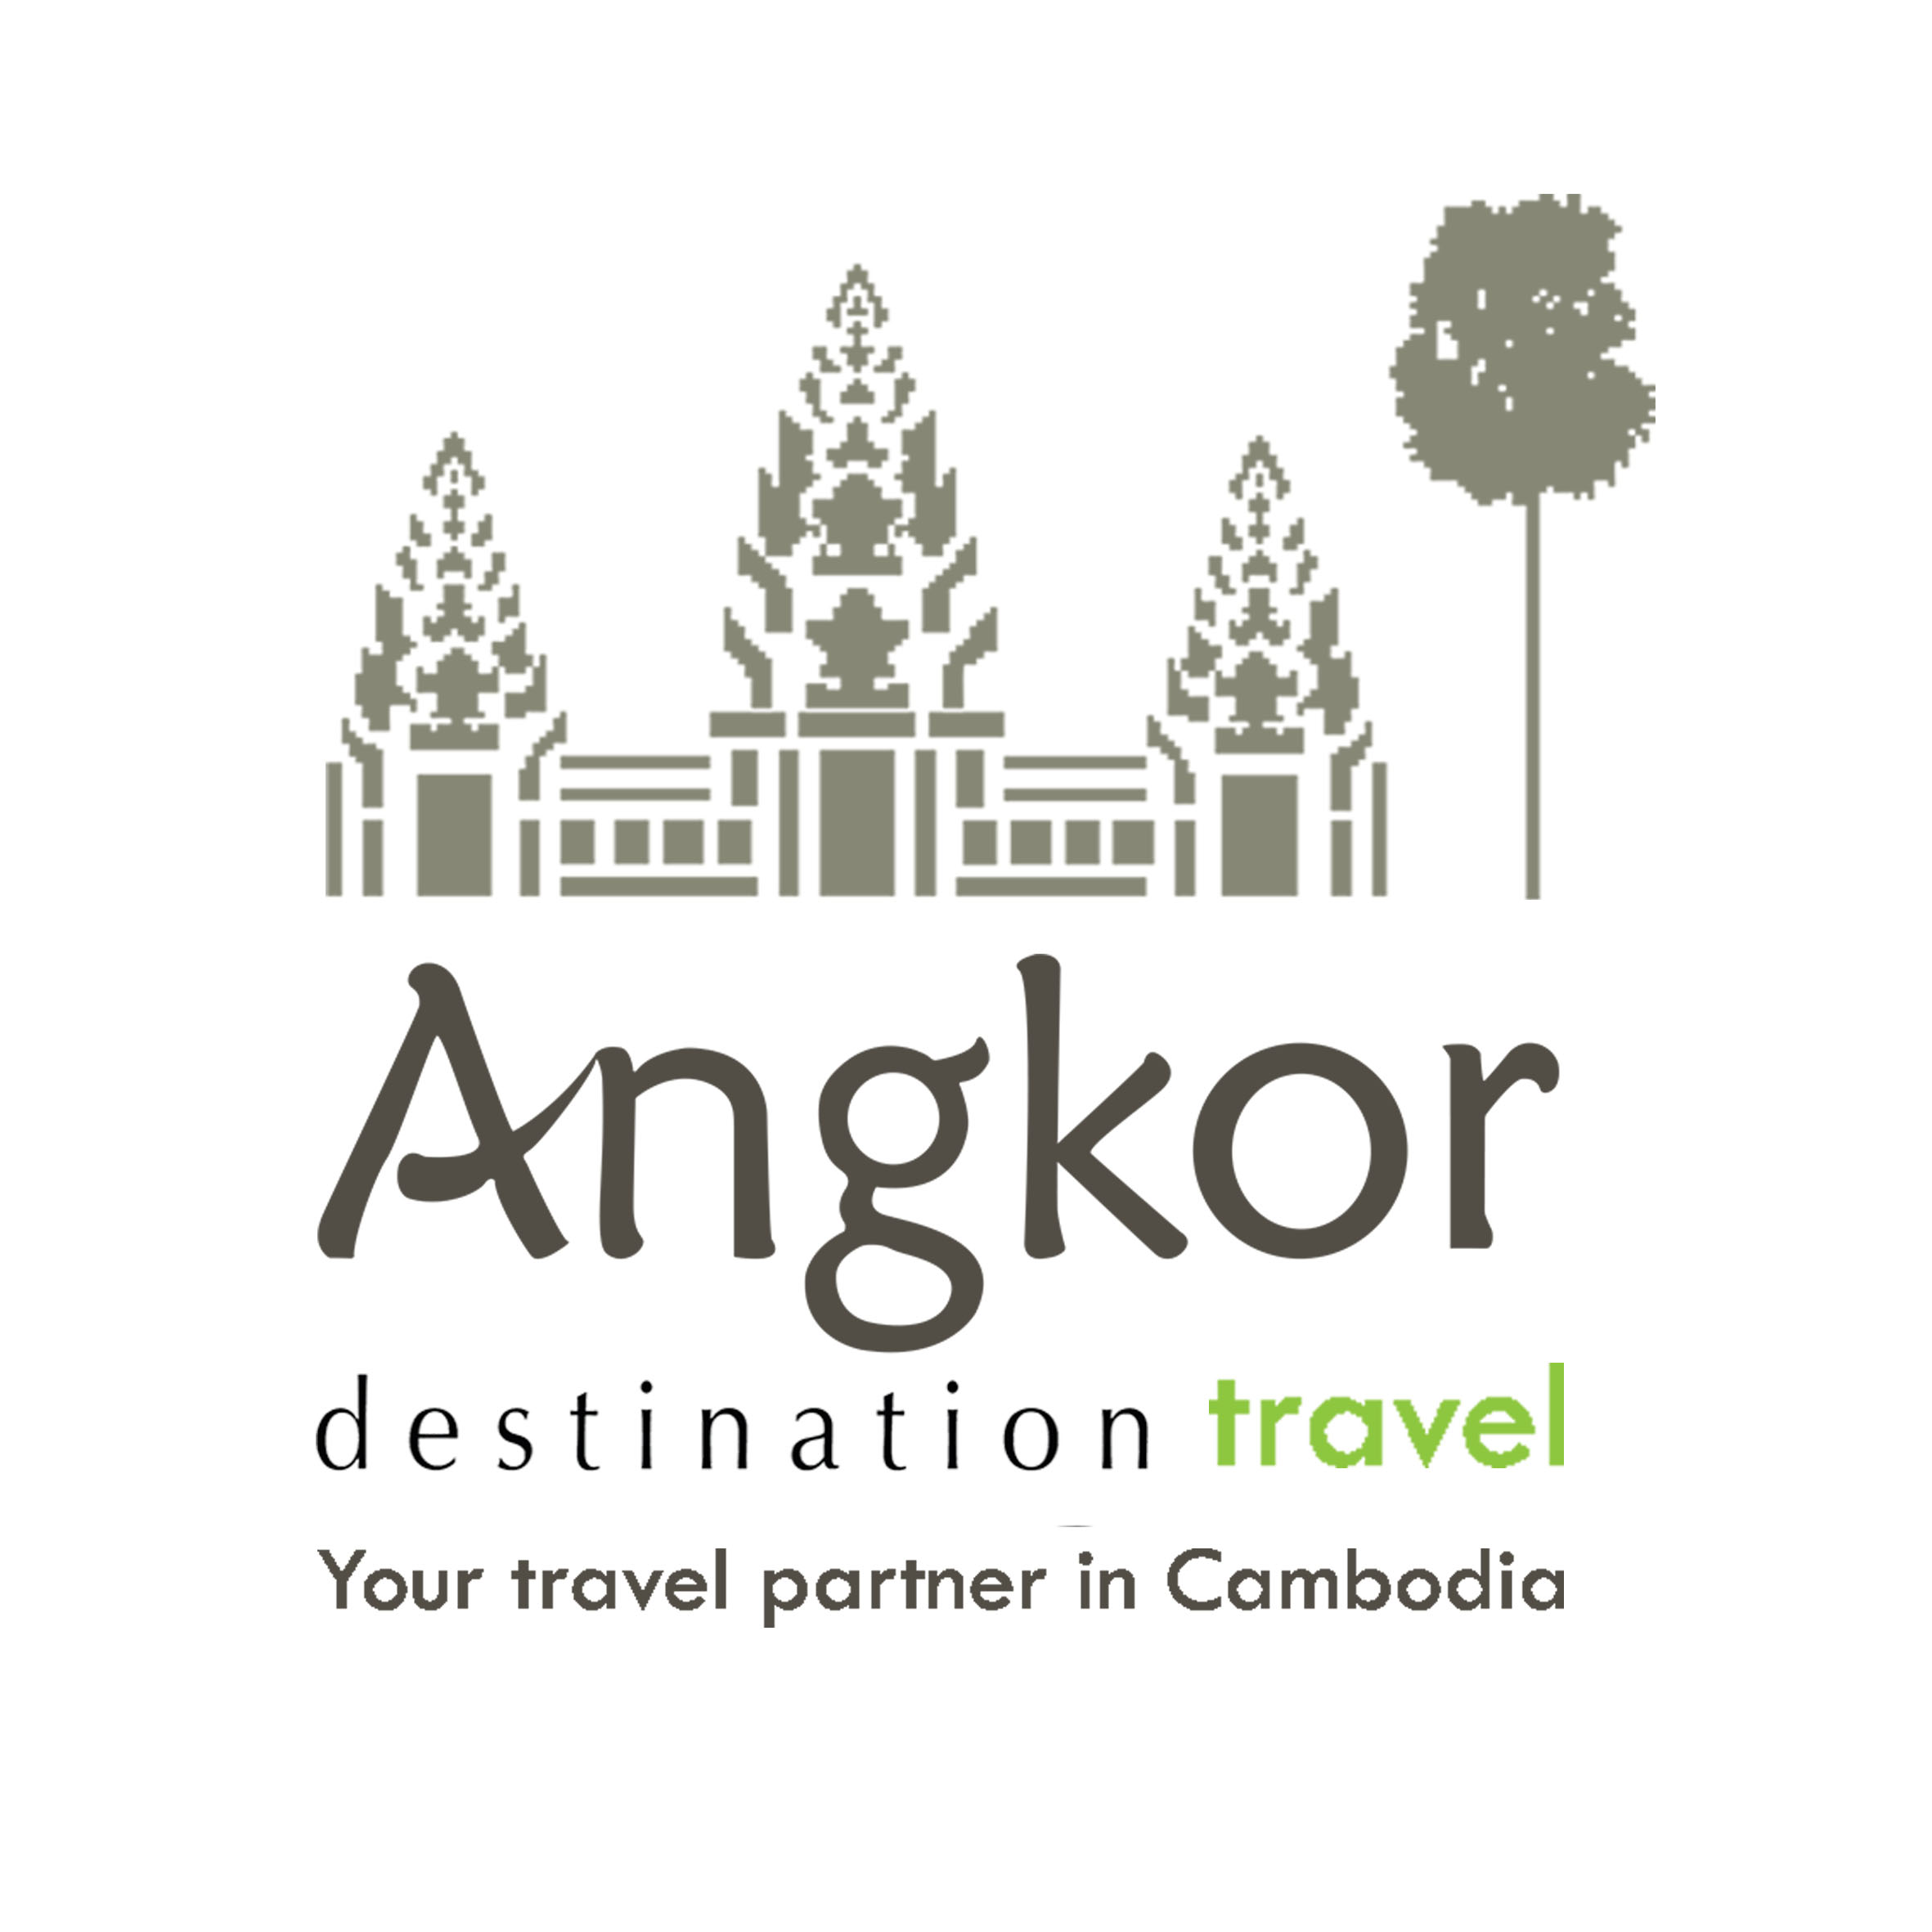 Angkor destination travel